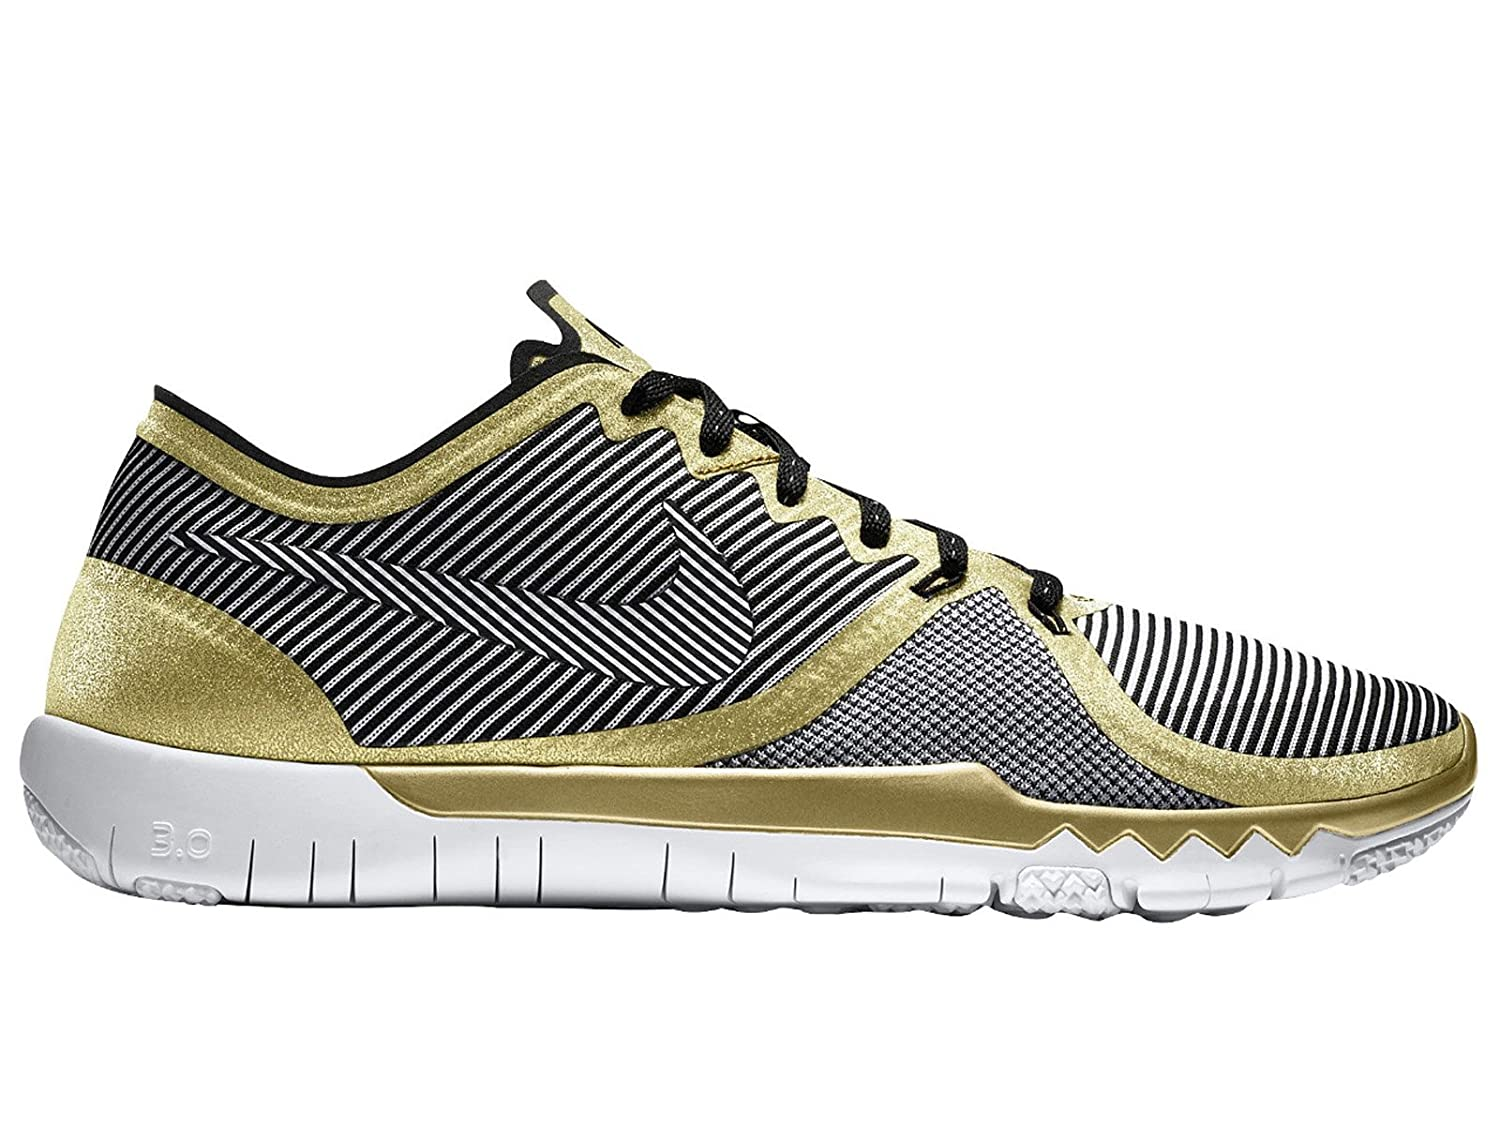 sports shoes afccd d310e Amazon.com   Nike Mens Free Trainer 3.0 V4 Gold White Black Synthetic  Cross-Trainers Shoes 11.5 M US   Shoes